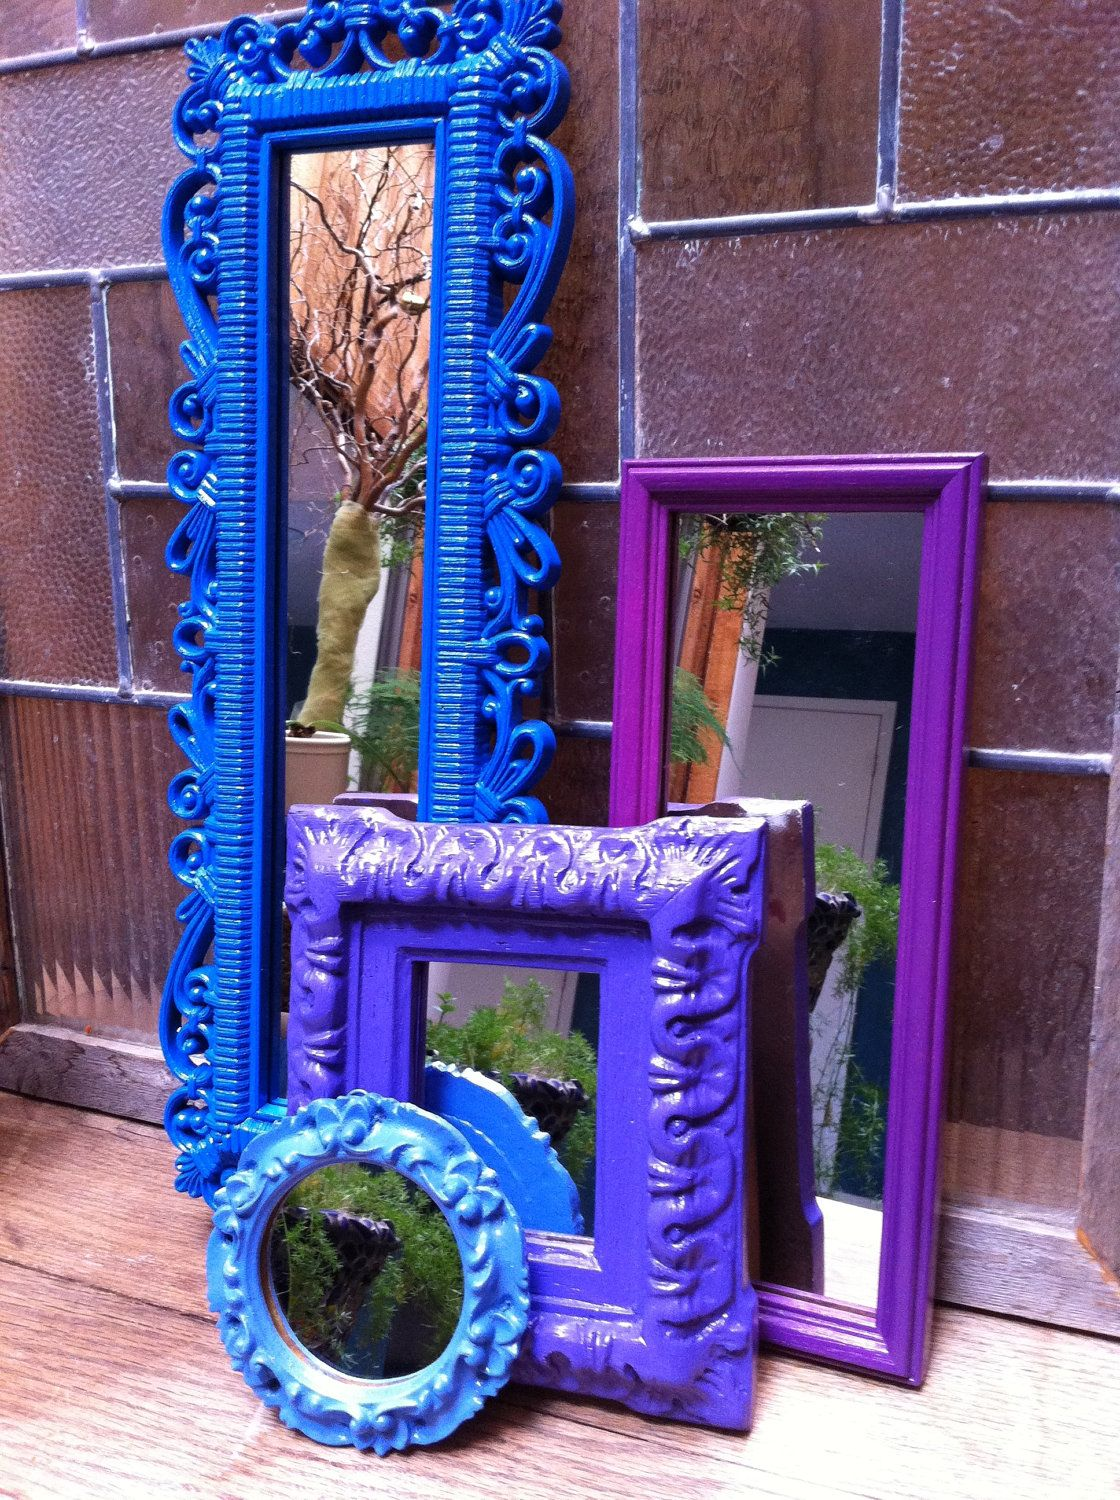 Upcycled Mirrors, Little Boy Blue, Purple, Vintage Mirrors, Unique Home Decor | Jewel tones ...